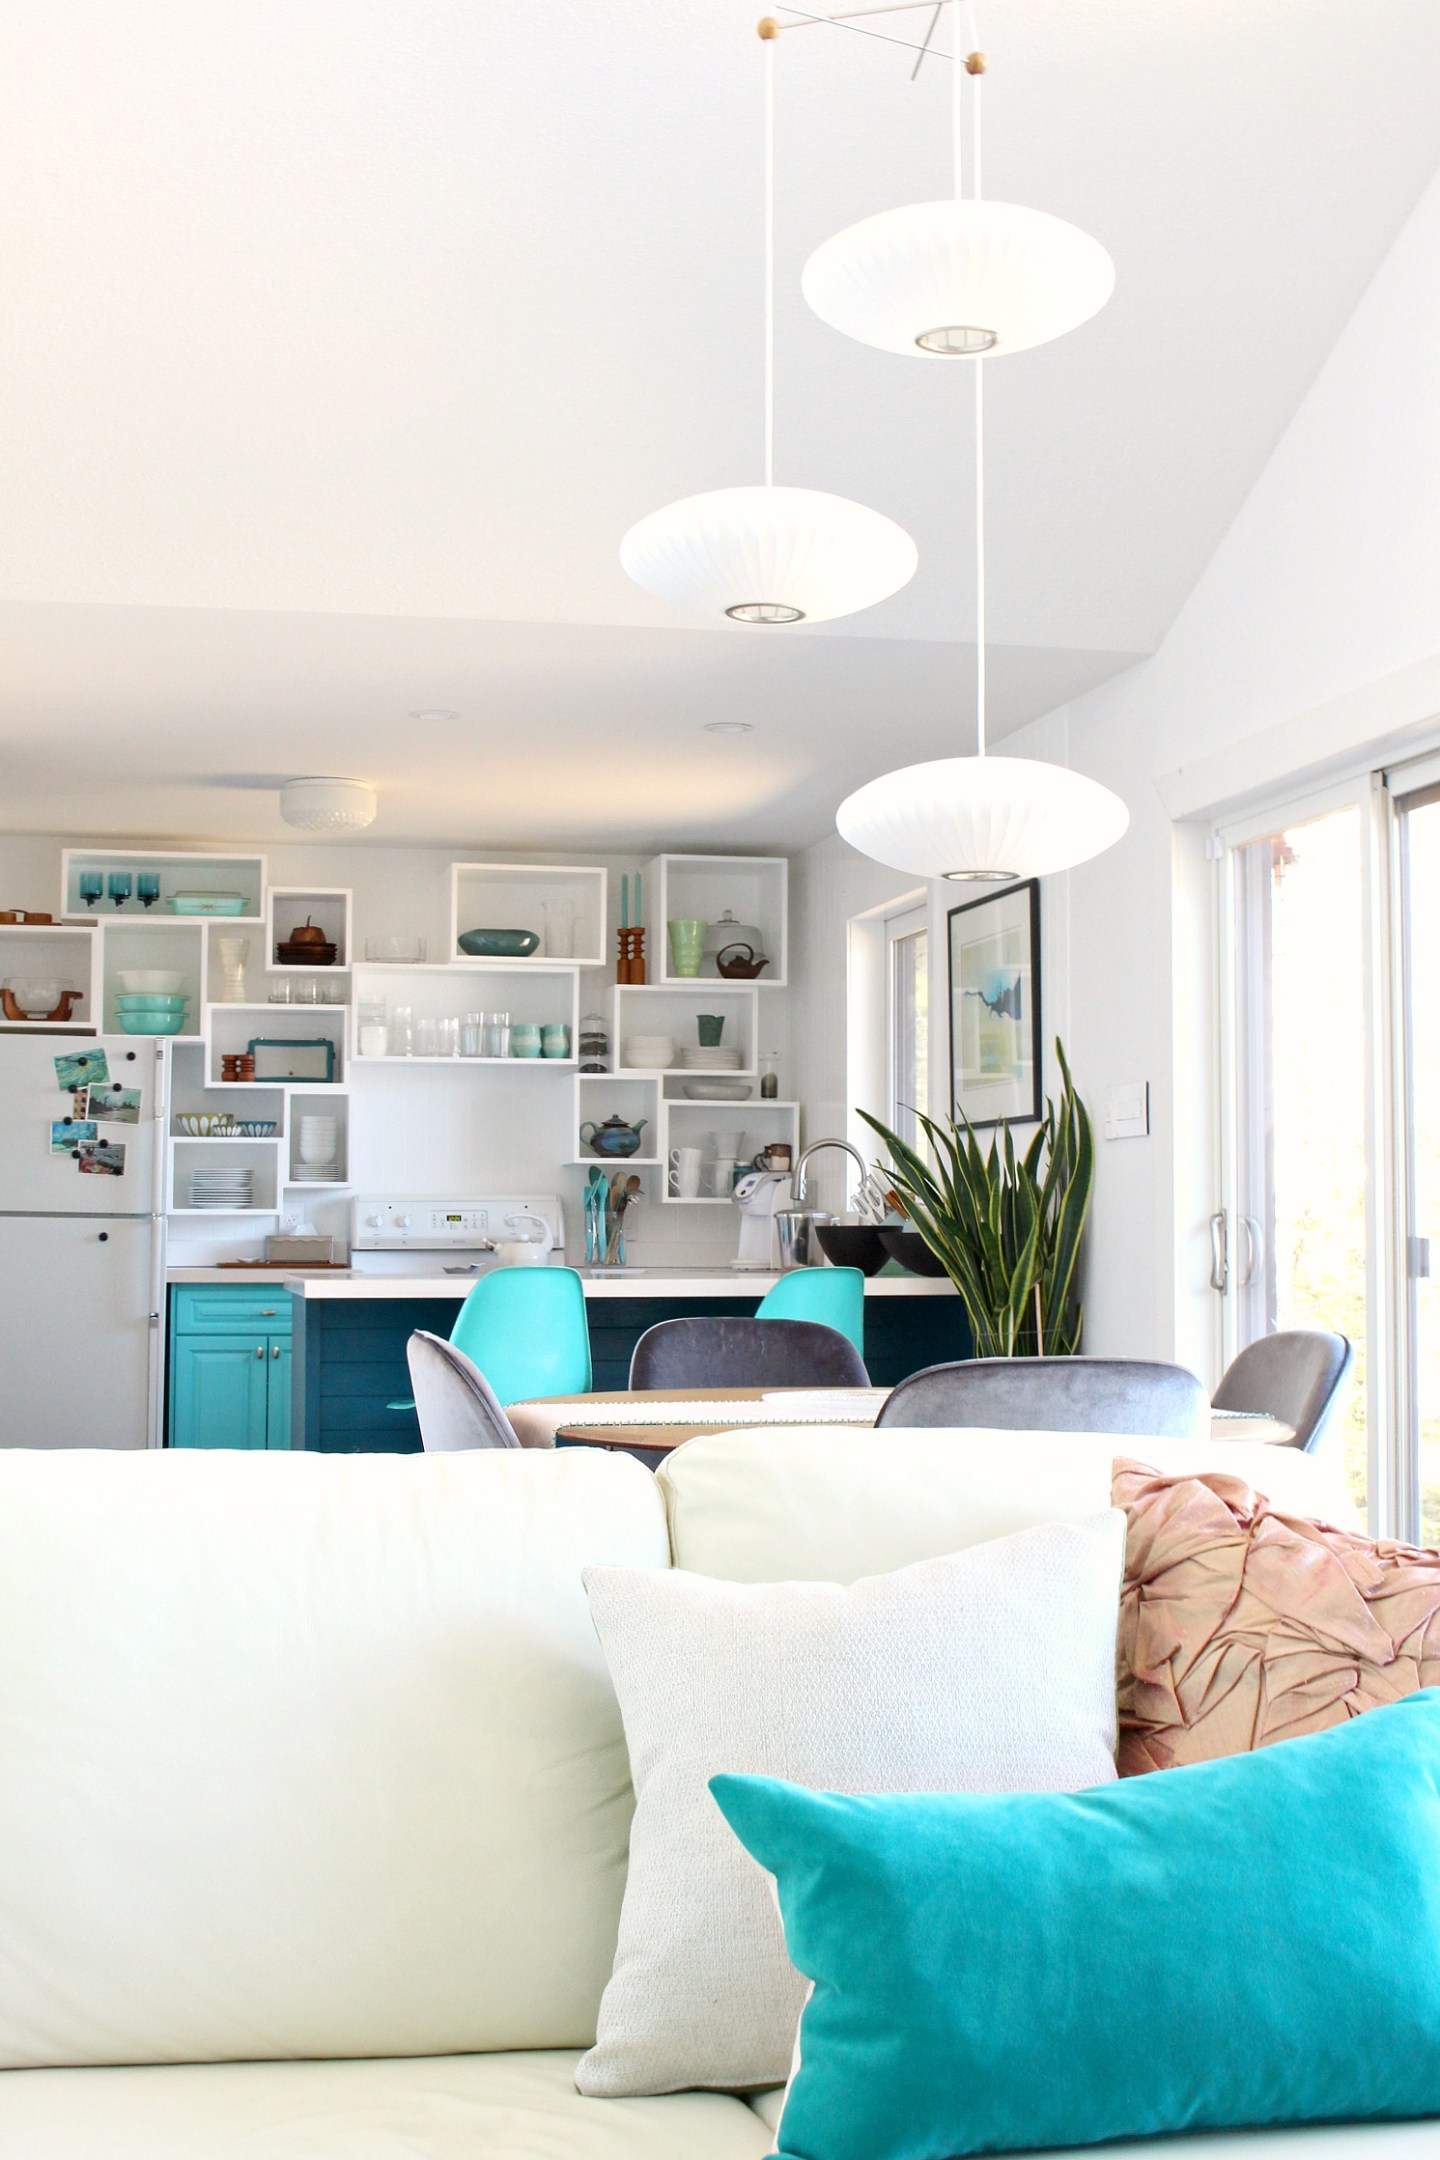 Bright Bold DIY Kitchen Design Ideas with Open Shelving Ideas and Tutorial for DIY Wall Cubbies